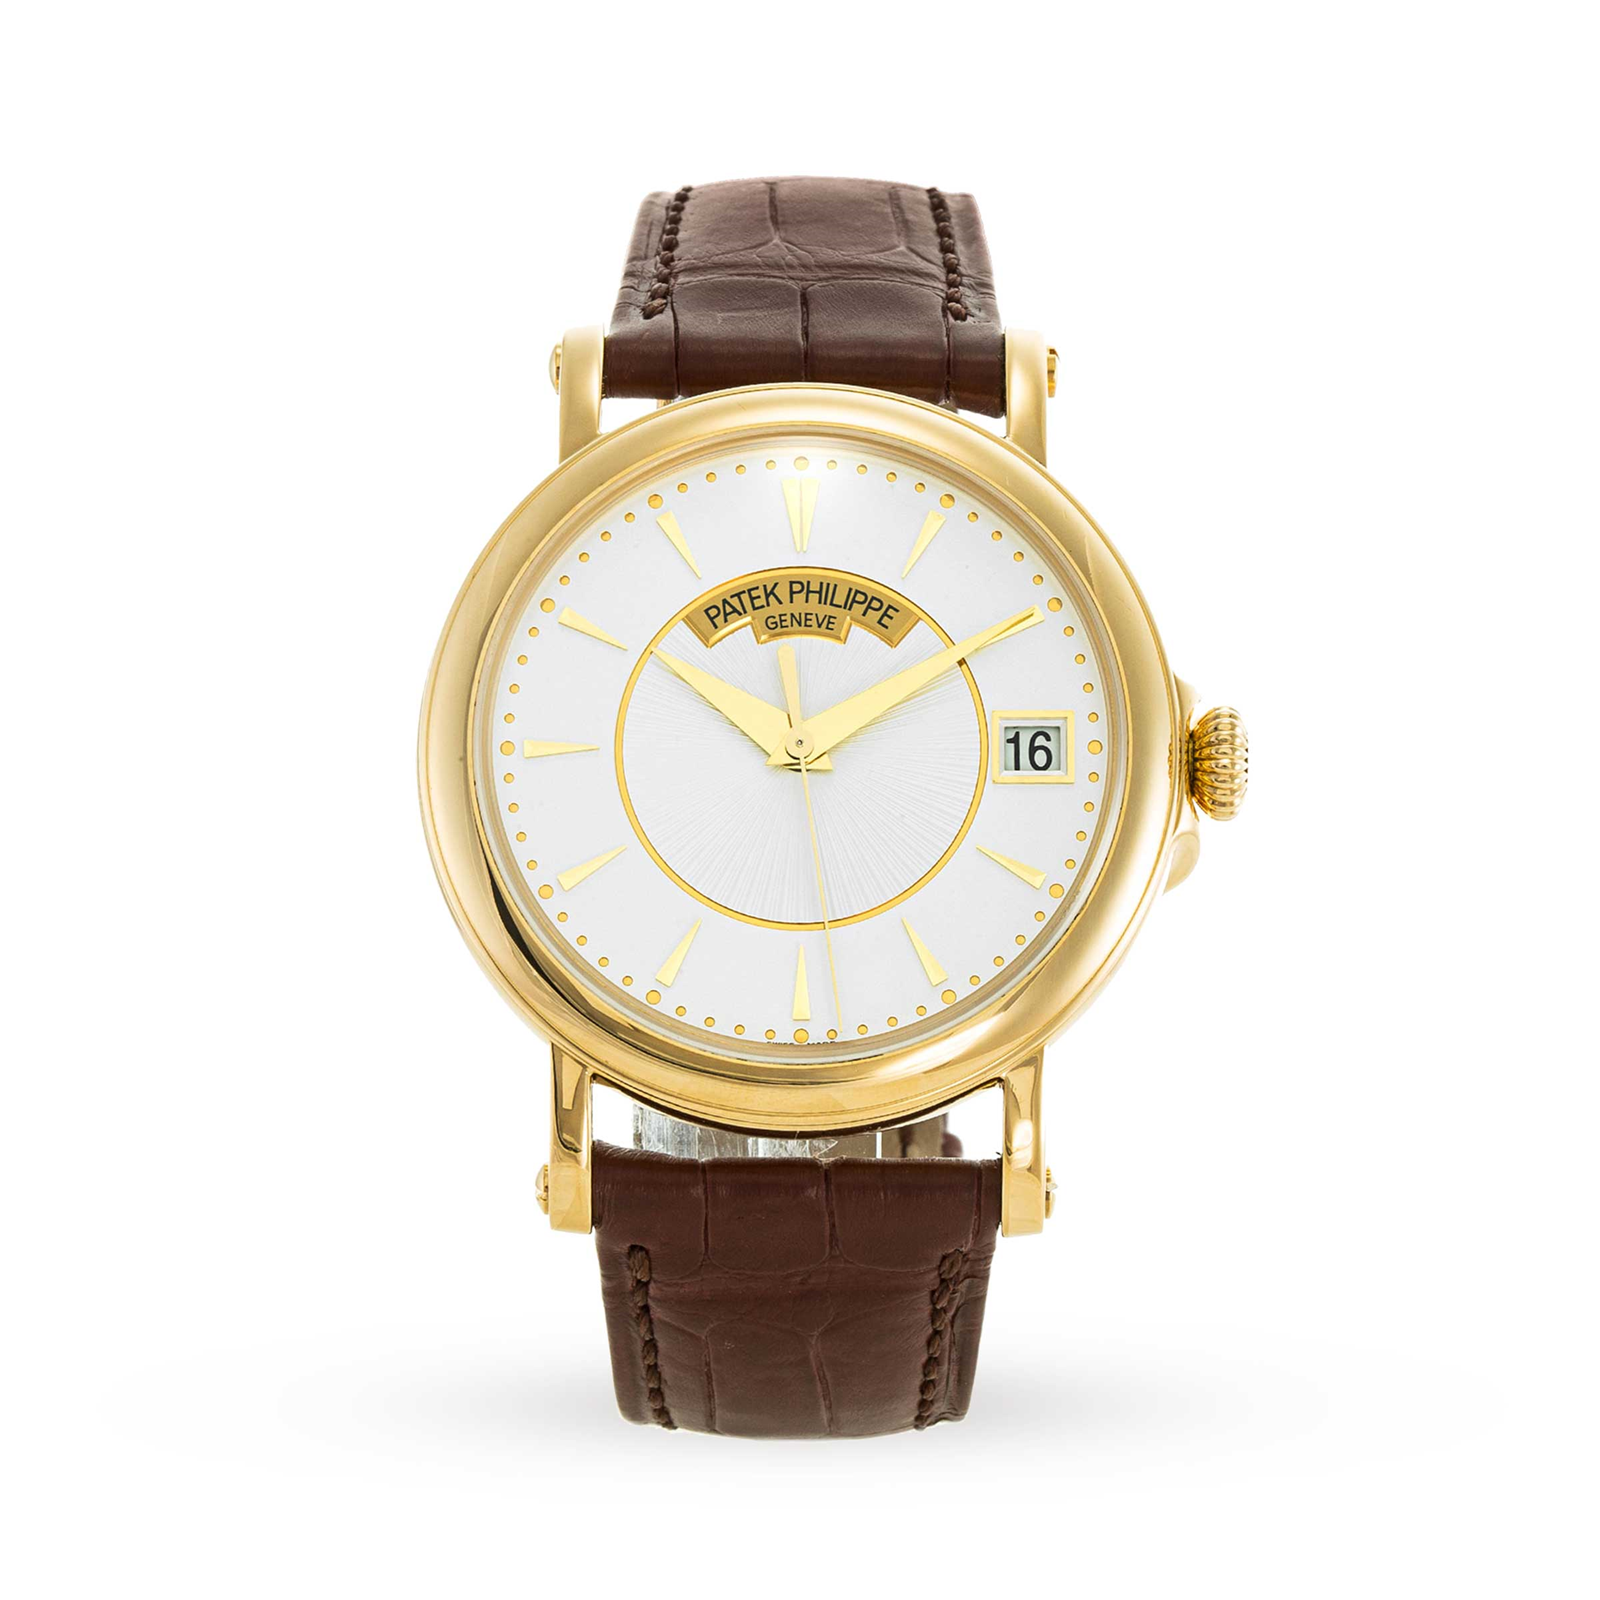 Patek Philippe Calatrava Watch.